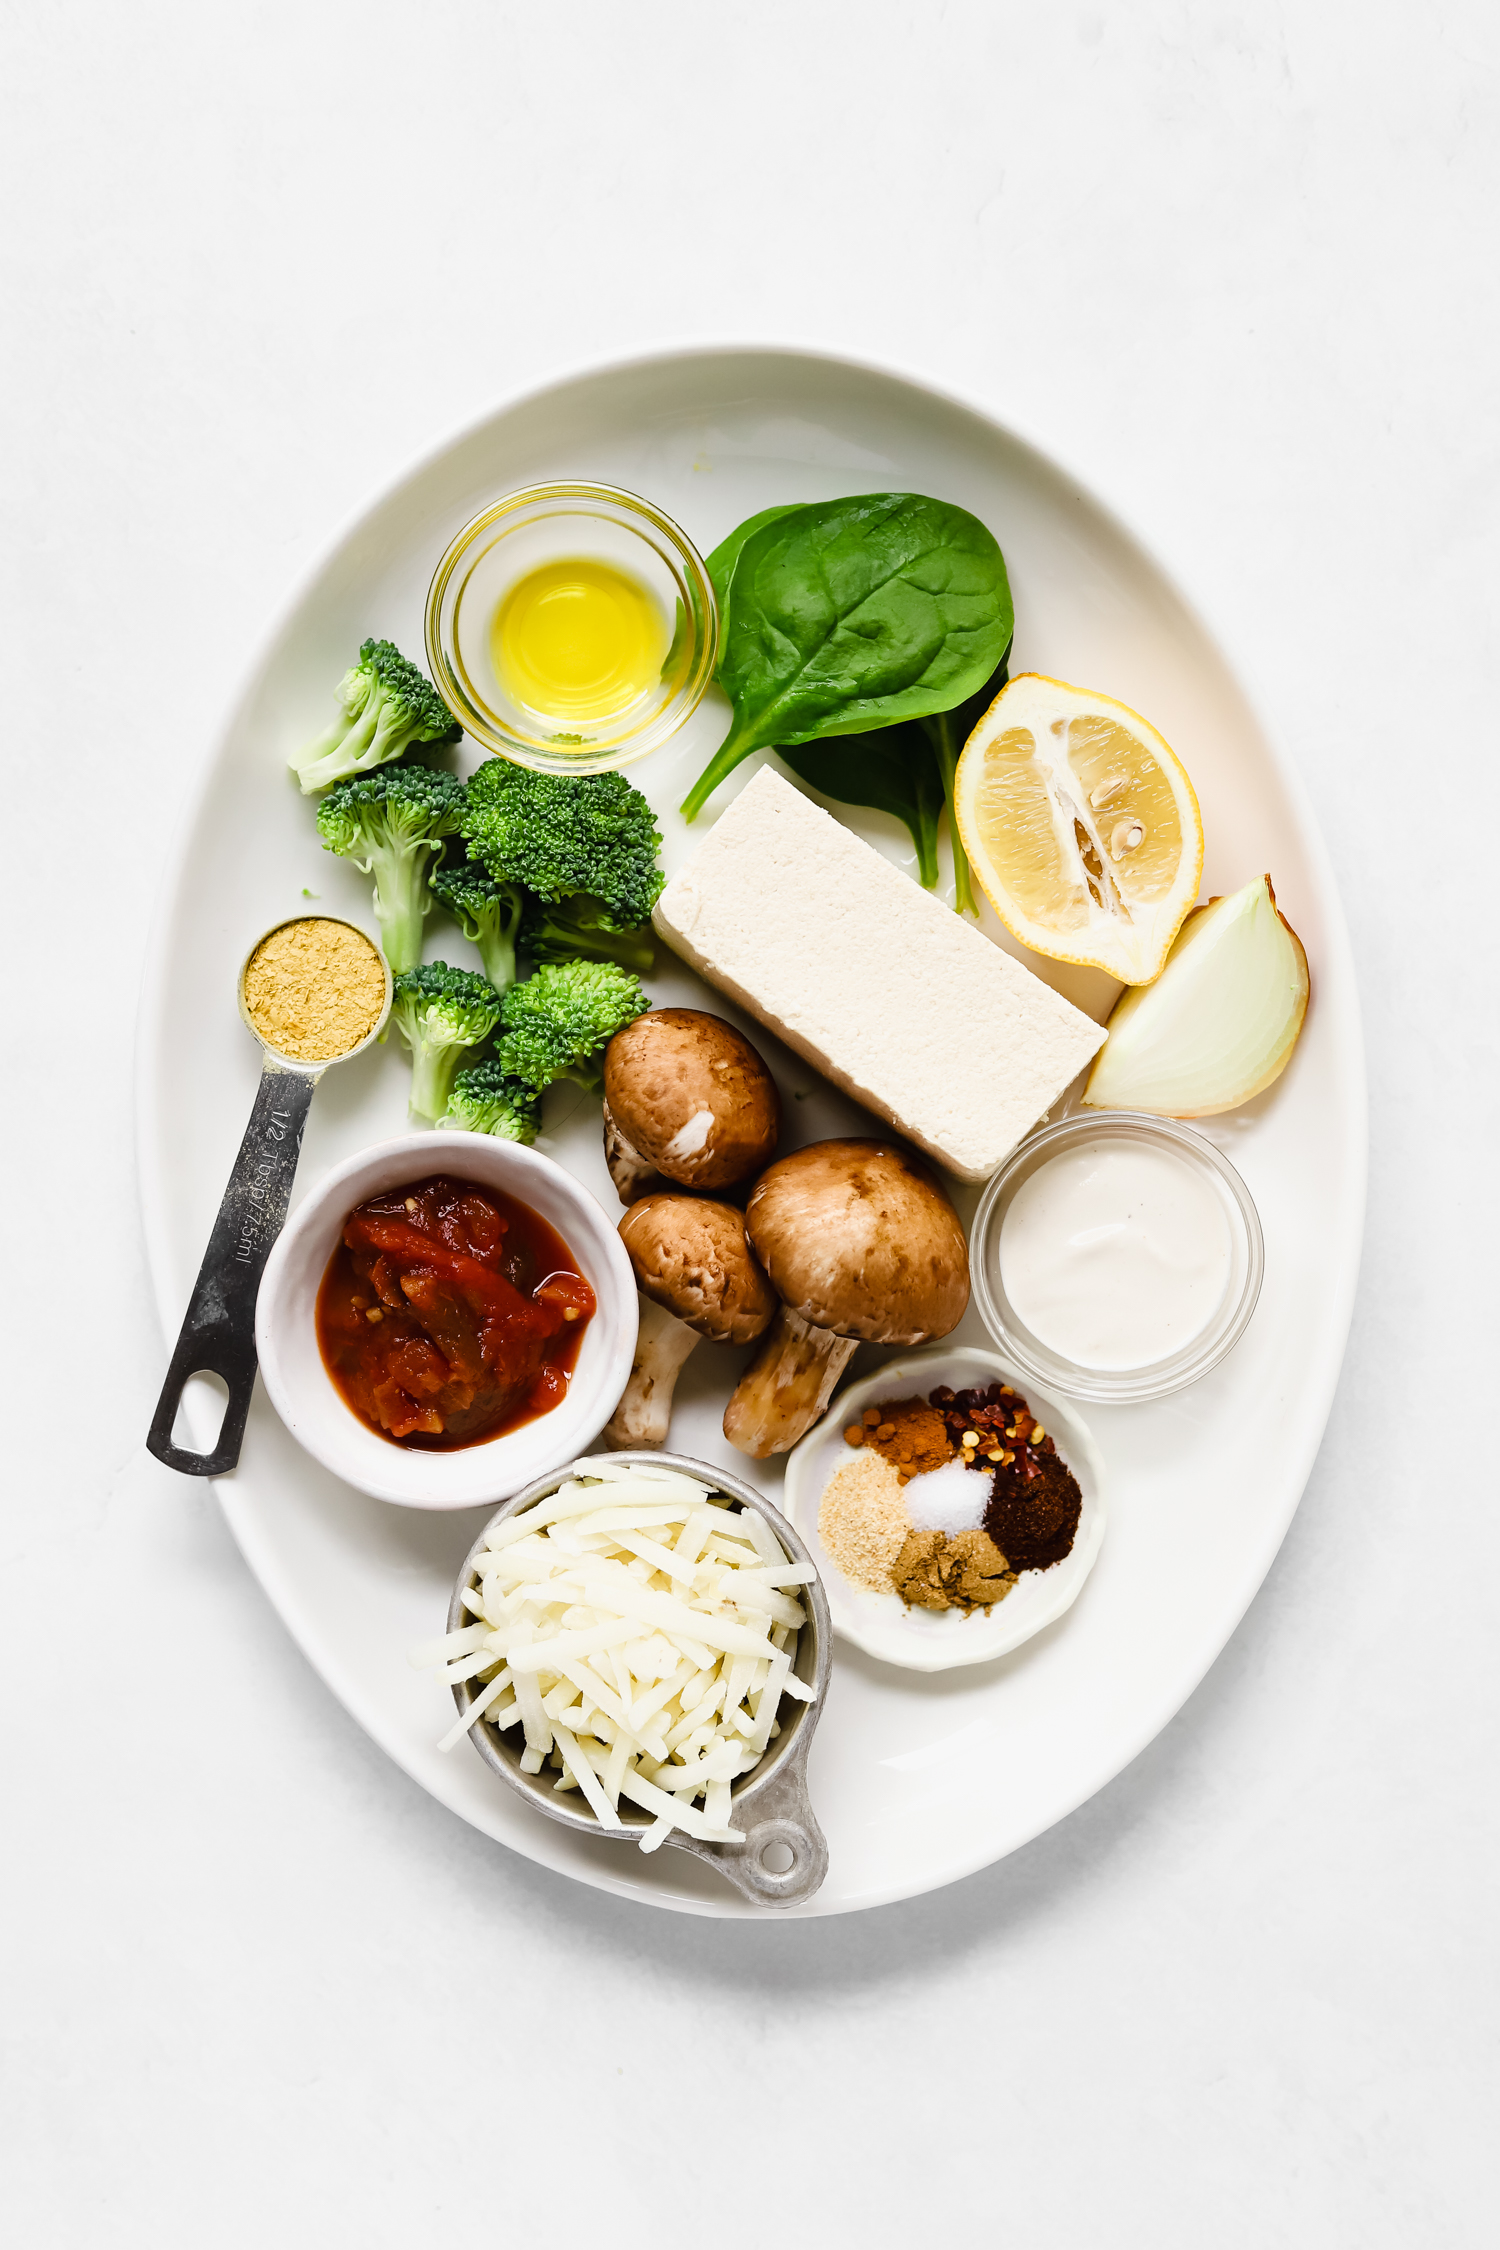 Ingredients for tofu scramble on an oval white platter.